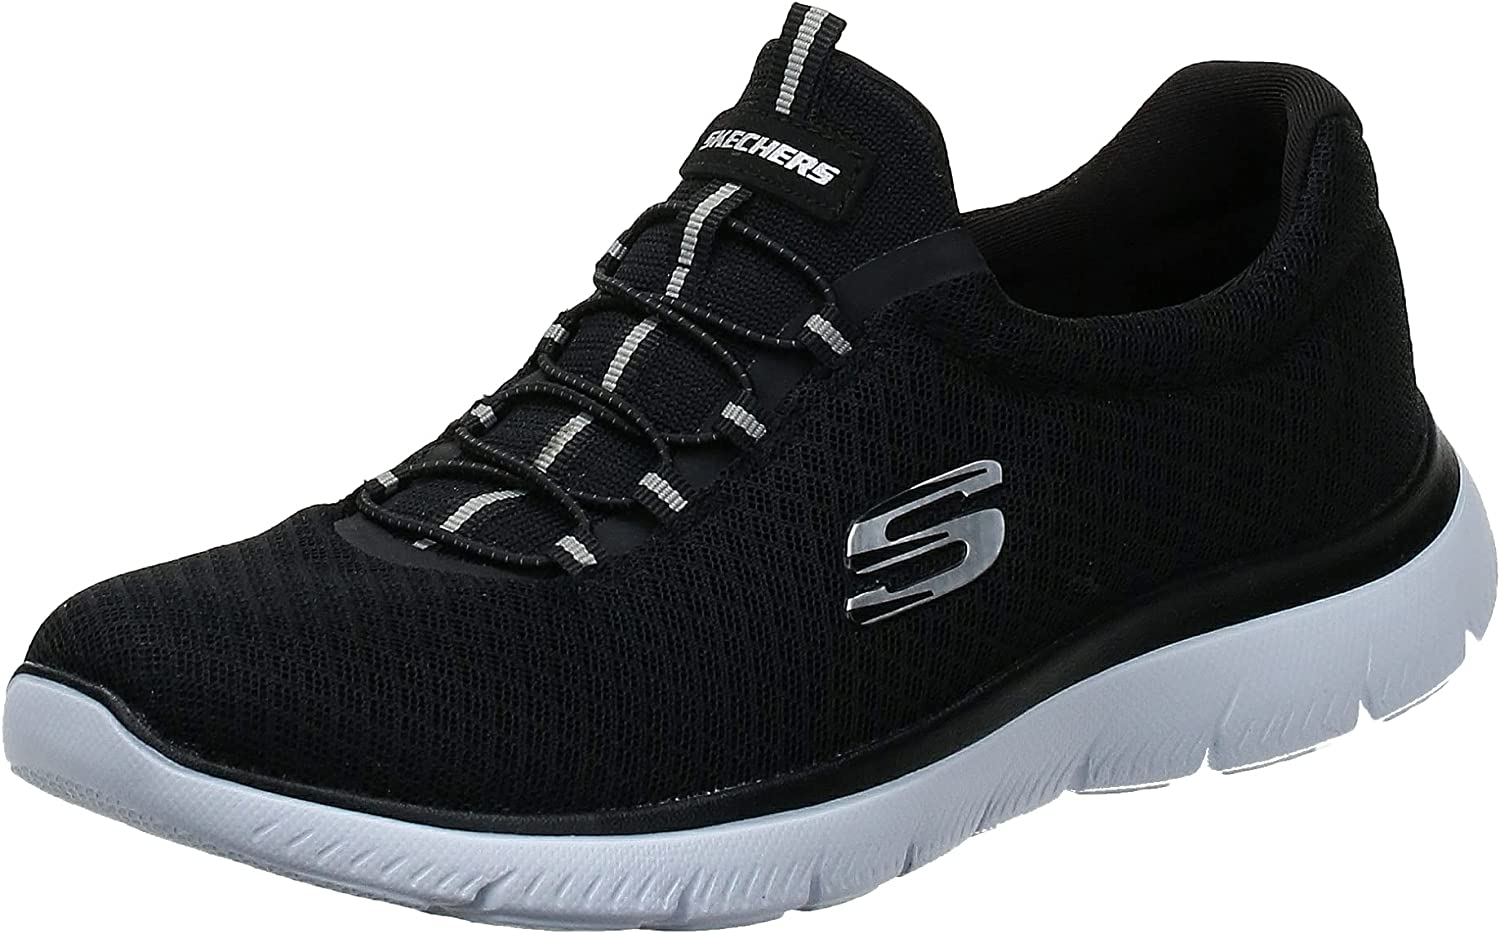 SEAL limited product Skechers Women's Sneaker Max 44% OFF Summits